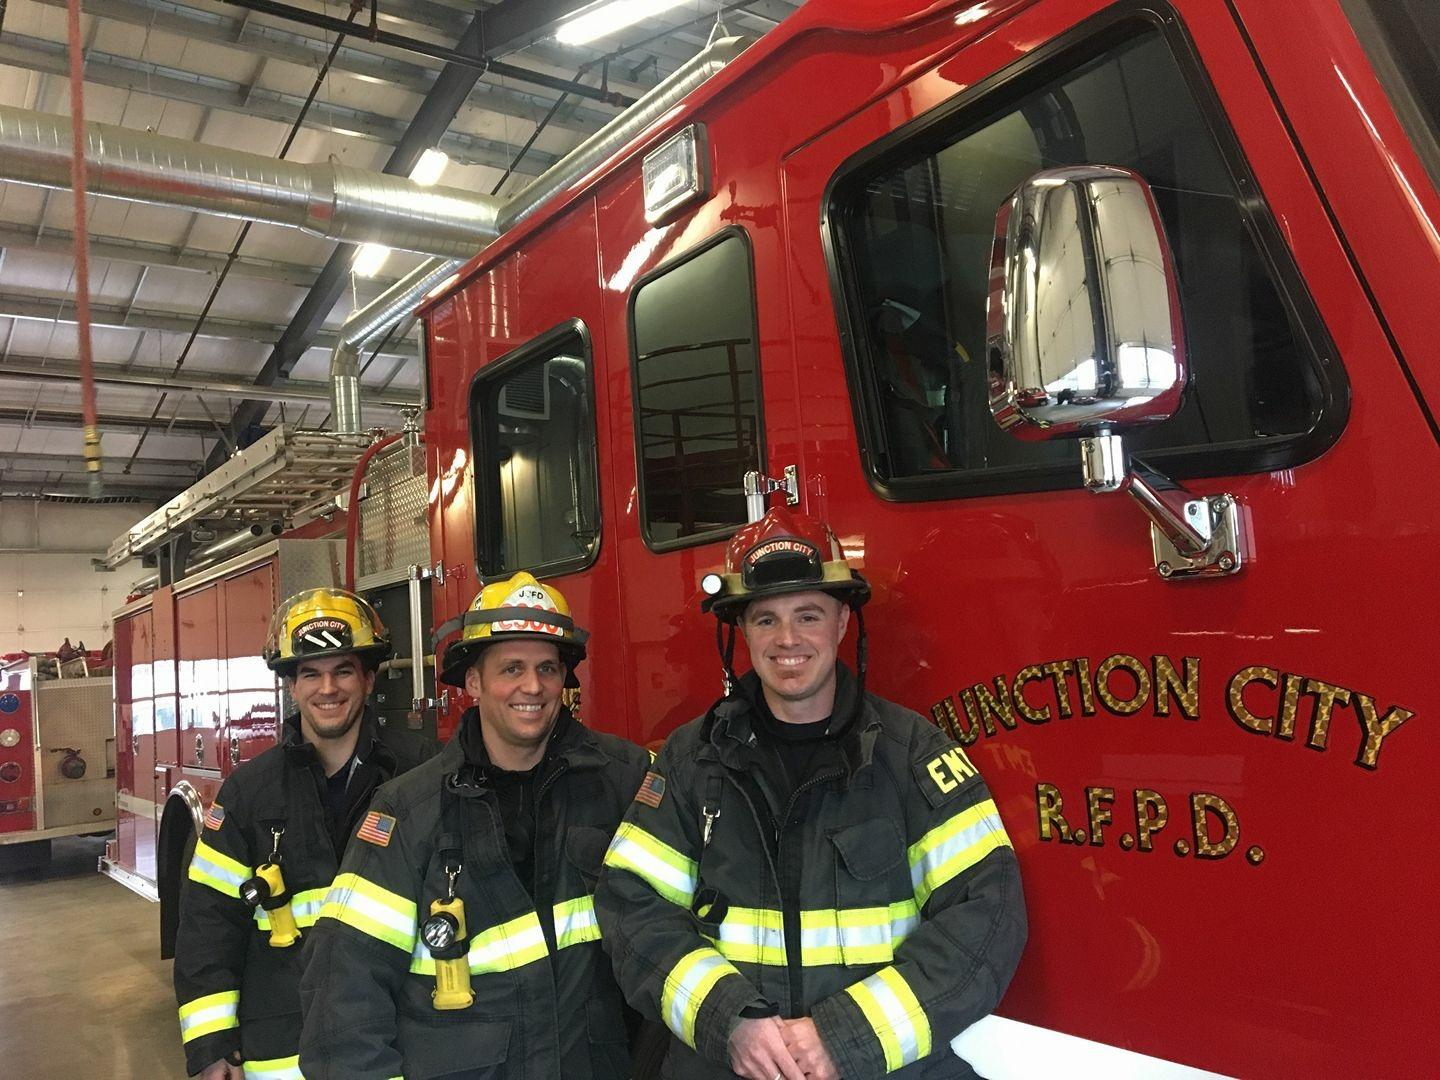 <p>Three Junction City firefighters are training for the annual{&amp;nbsp;}<a  href=&quot;http://www.llswa.org/site/PageServer?pagename=ff_home&quot; target=&quot;_blank&quot; title=&quot;http://www.llswa.org/site/PageServer?pagename=ff_home&quot;>Scott Firefighter Stair Climb</a>{&amp;nbsp;}this weekend. It's a fundraiser for the Leukemia and Lymphoma Society. (SBG)</p>